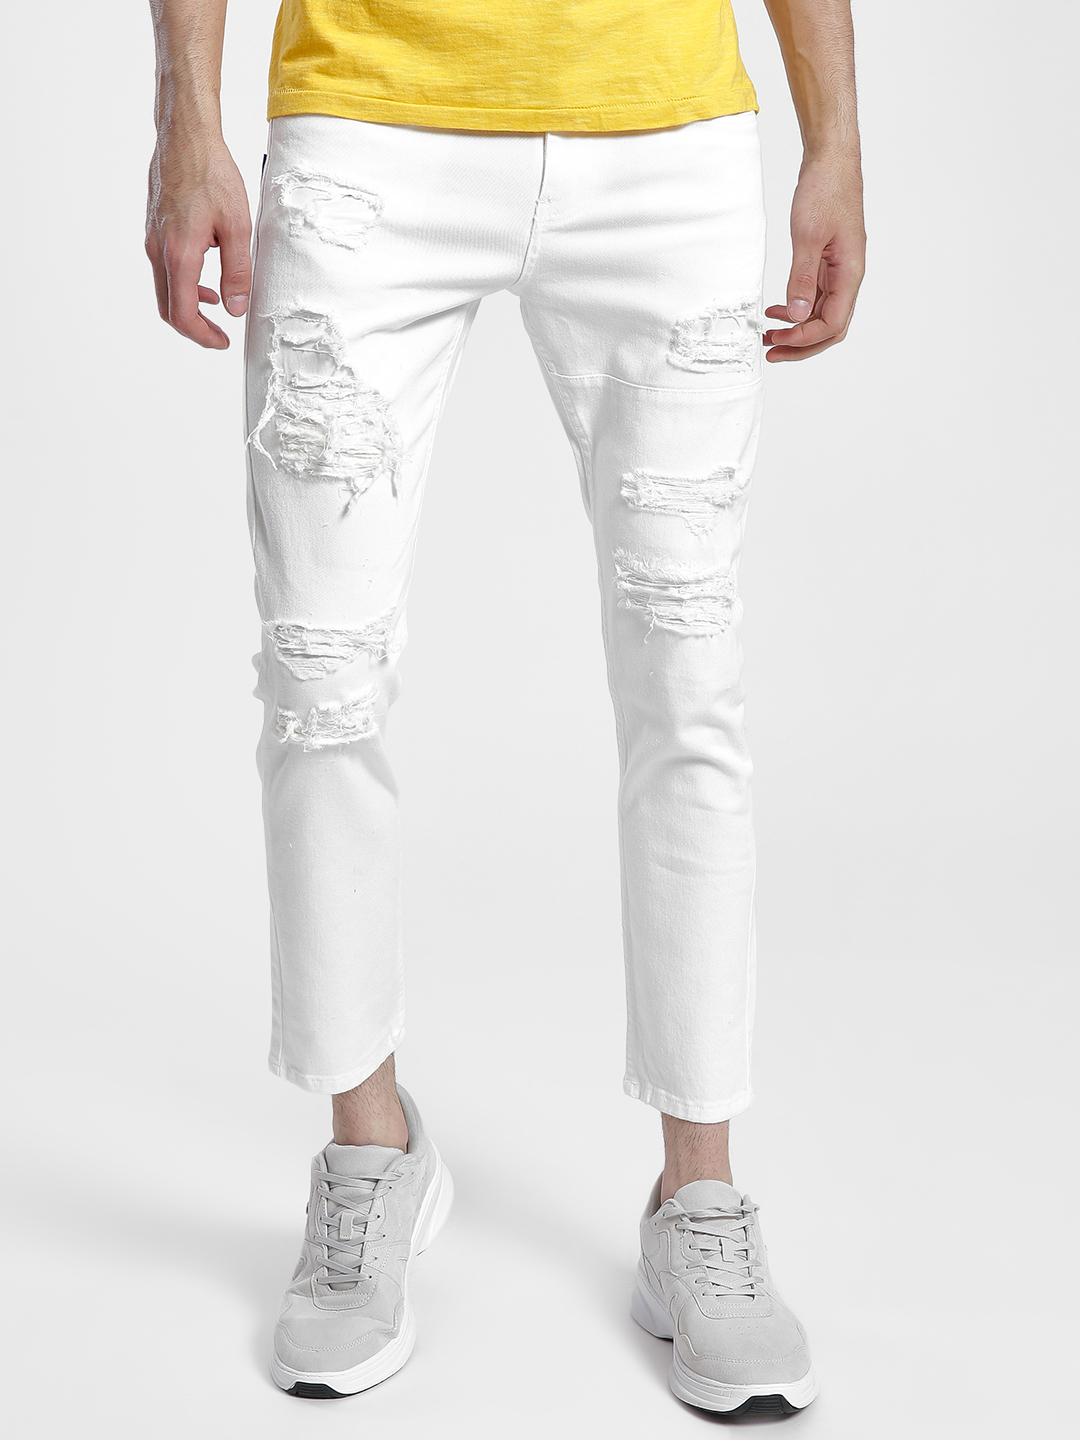 Blue Saint White Distressed Skinny Jeans 1